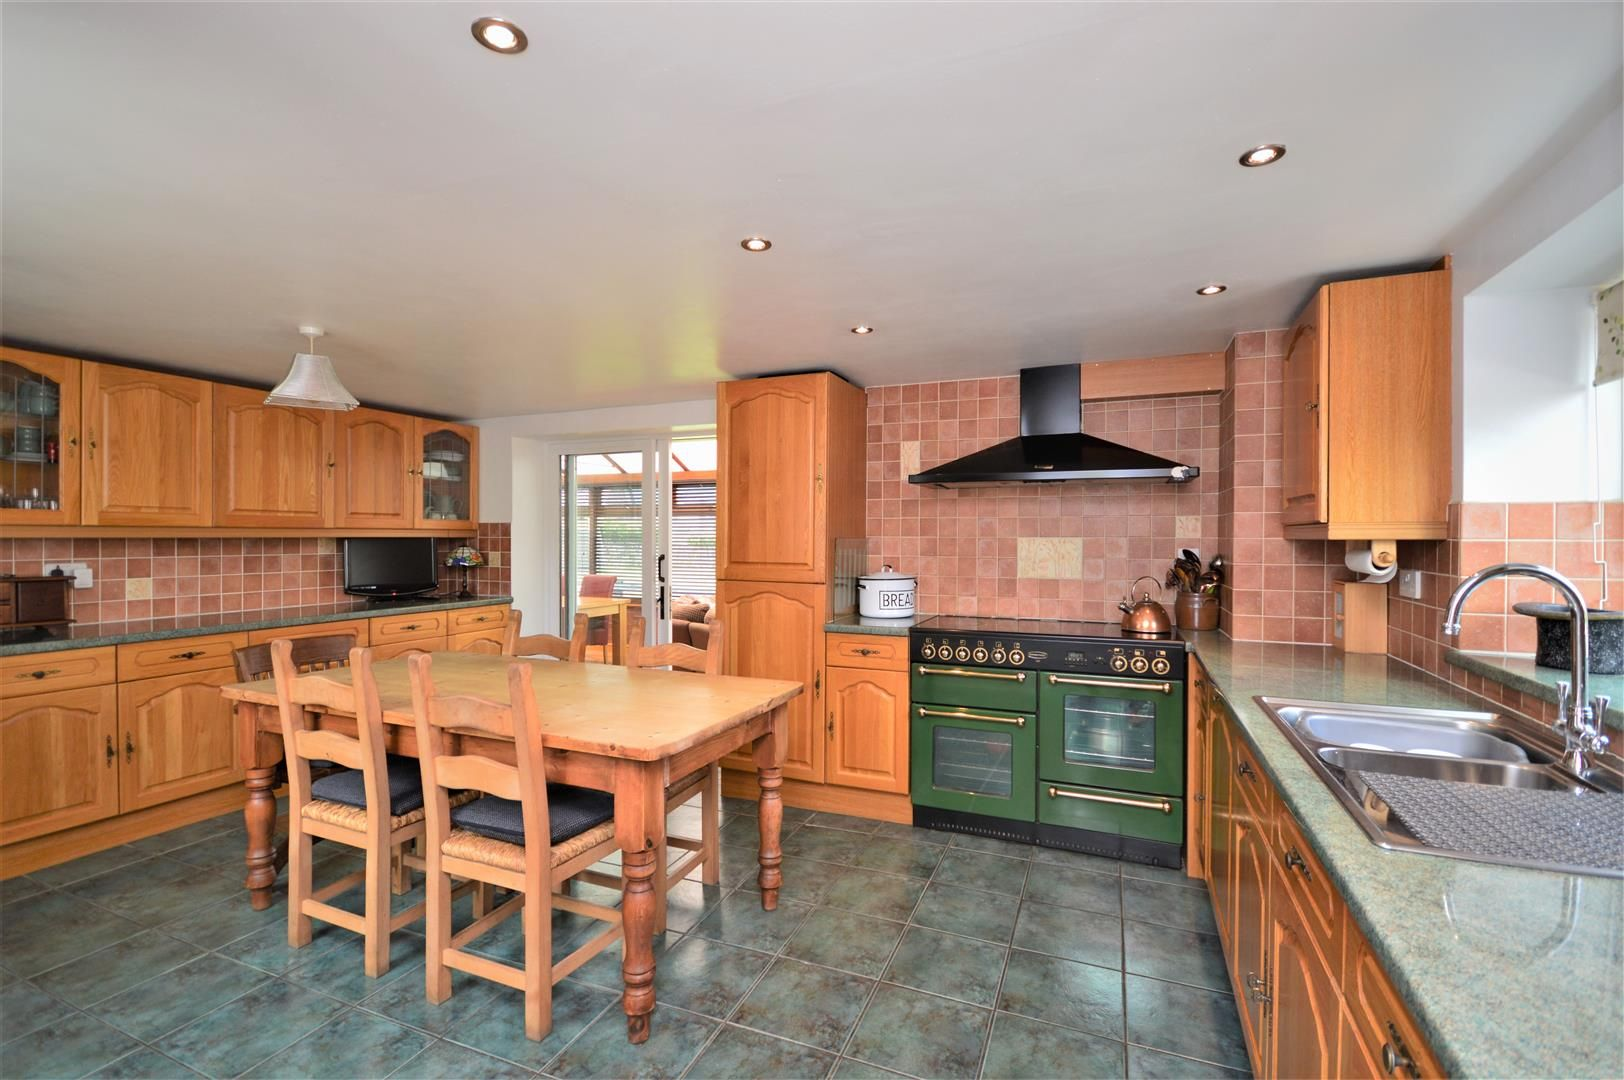 3 bed detached for sale in Orcop  - Property Image 5